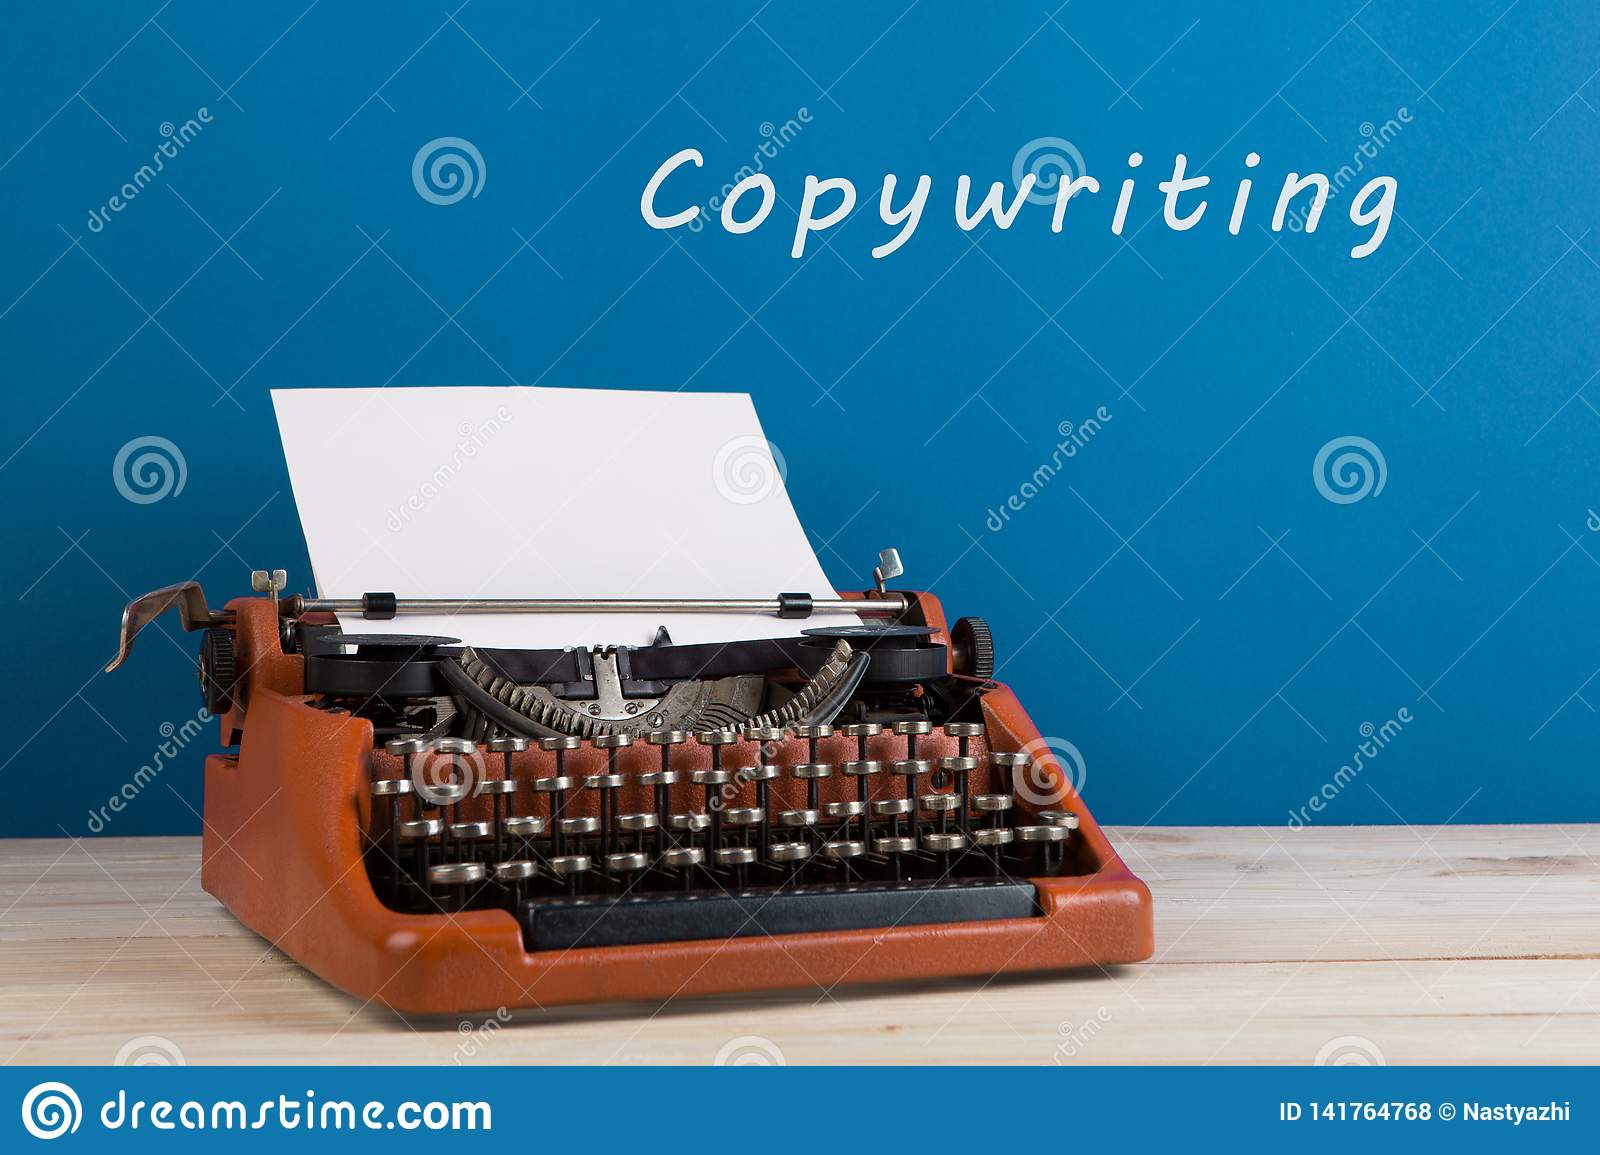 """writer's workplace - typewriter on blue blackboard background with text """"Copywriting"""